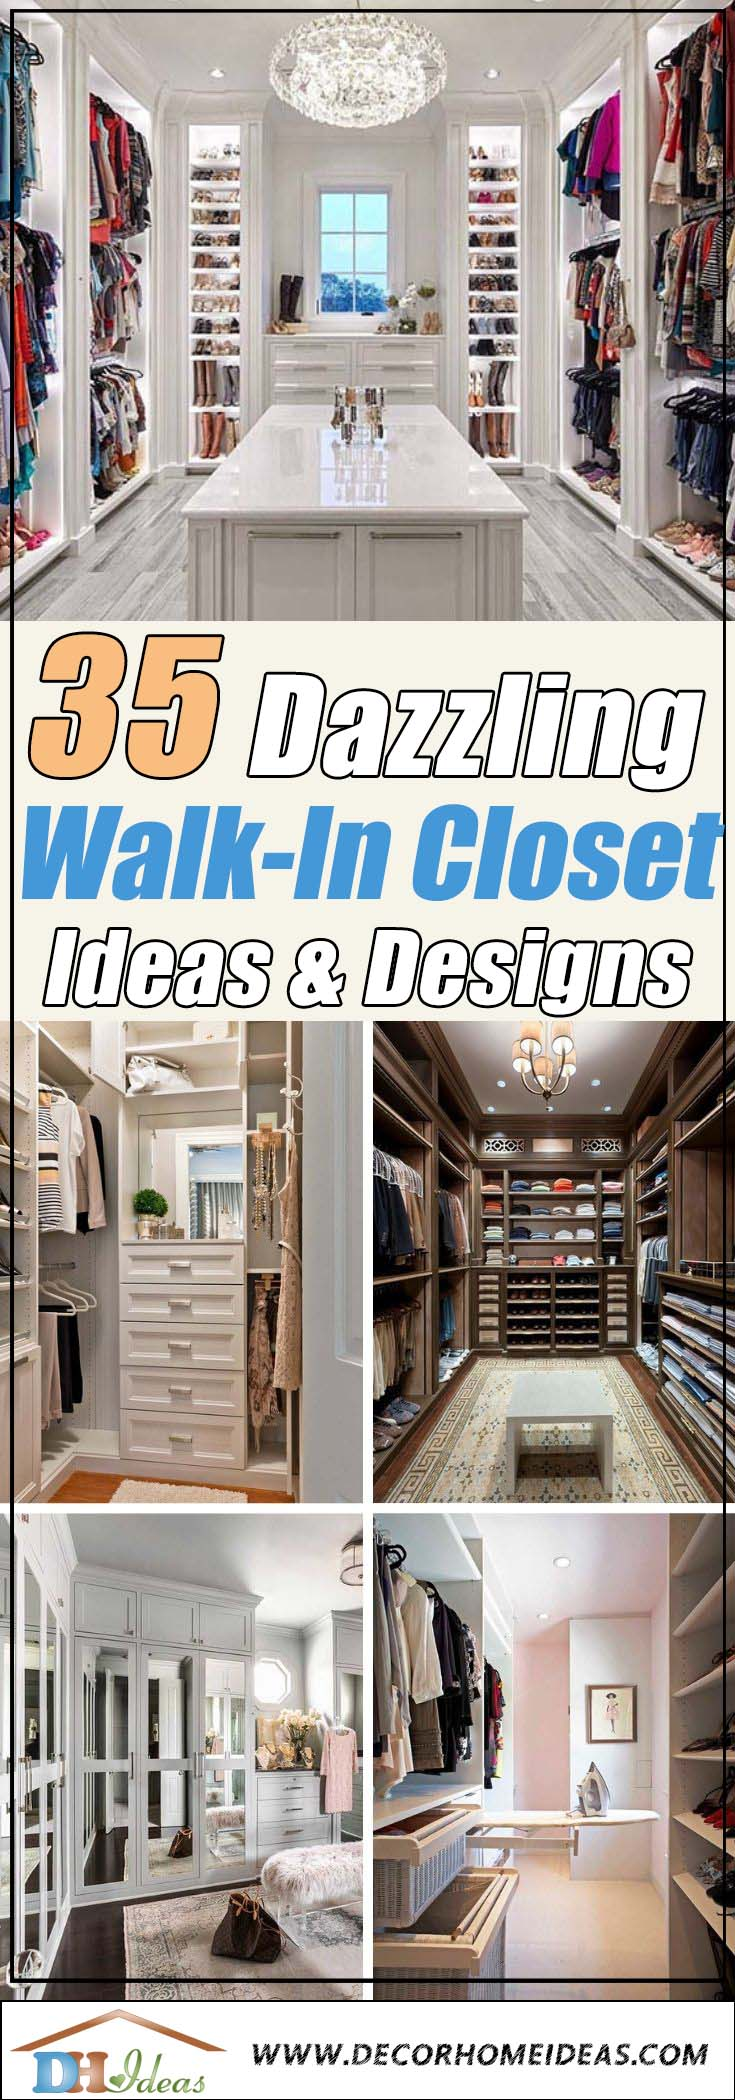 Best Walk-In Closet Ideas and Designs #closet #storage #decorhomeideas